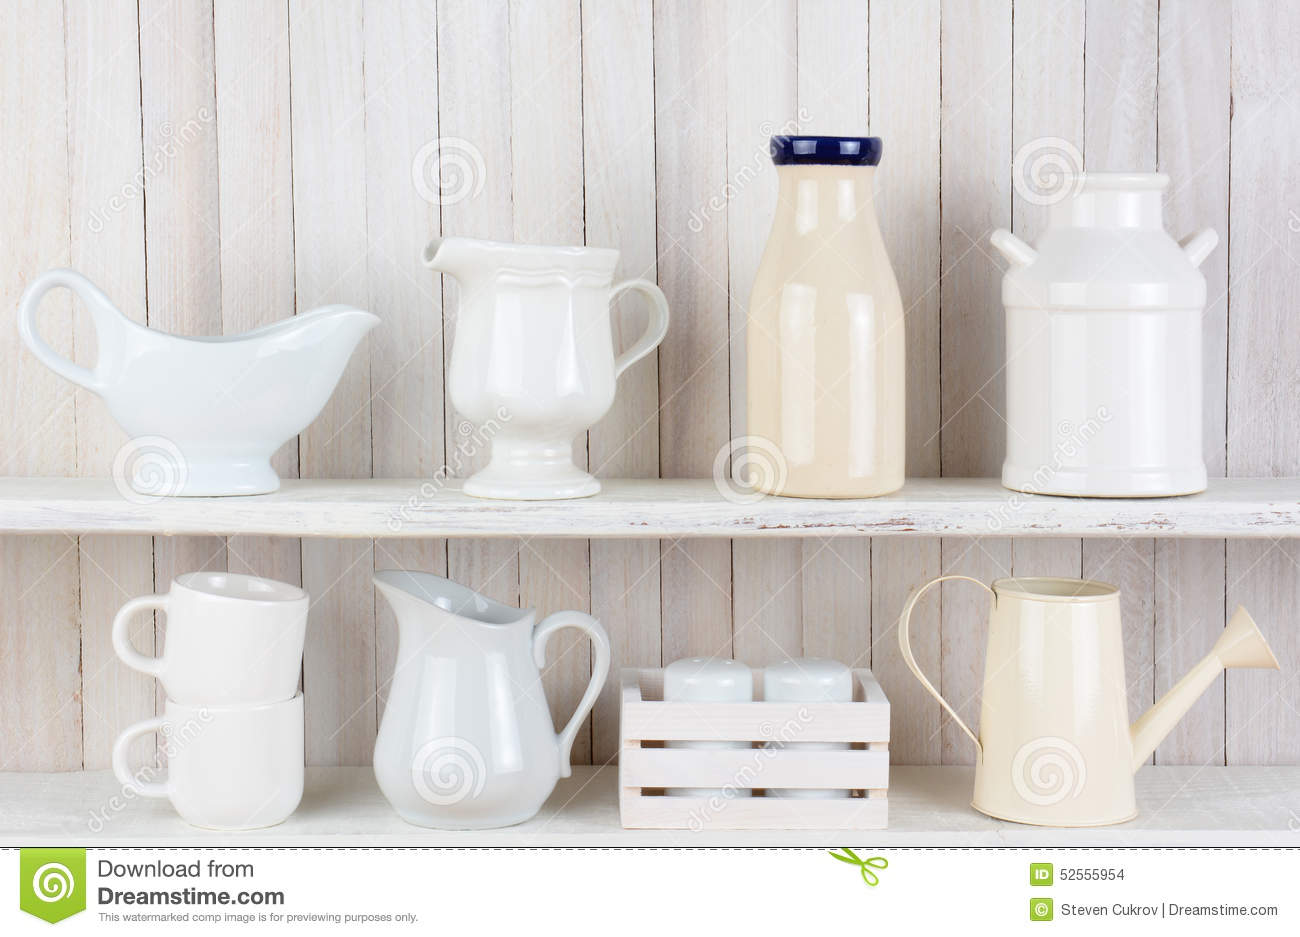 White Kitchen Shelves rustic white kitchen shelves stock photo - image: 52555954